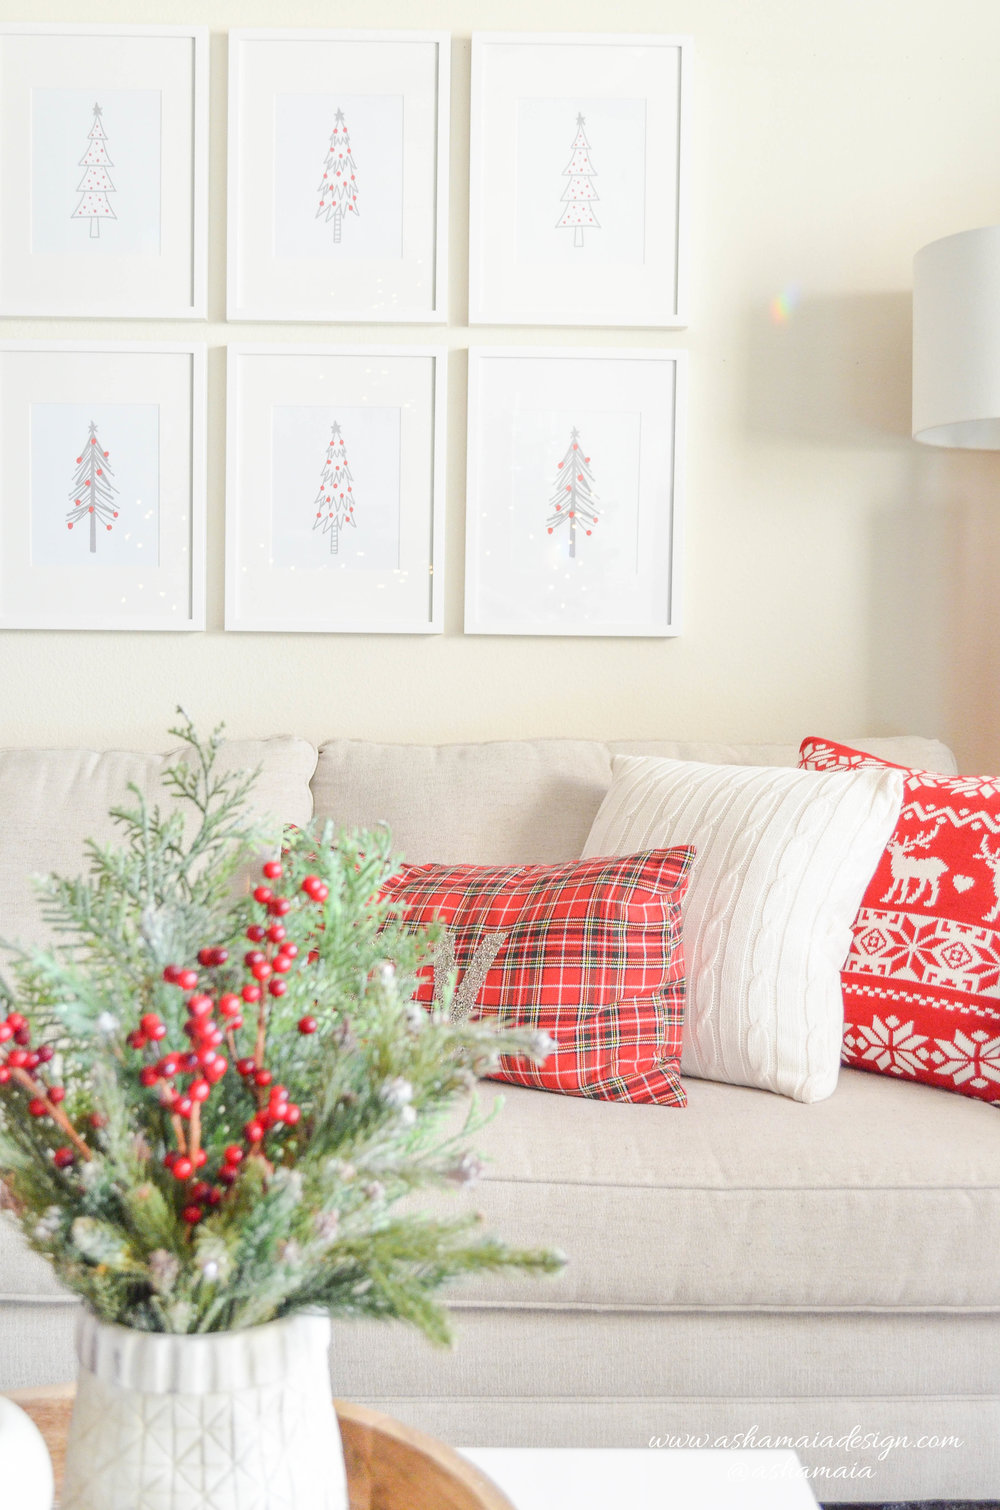 Cozy Christmas Decor-26.jpg